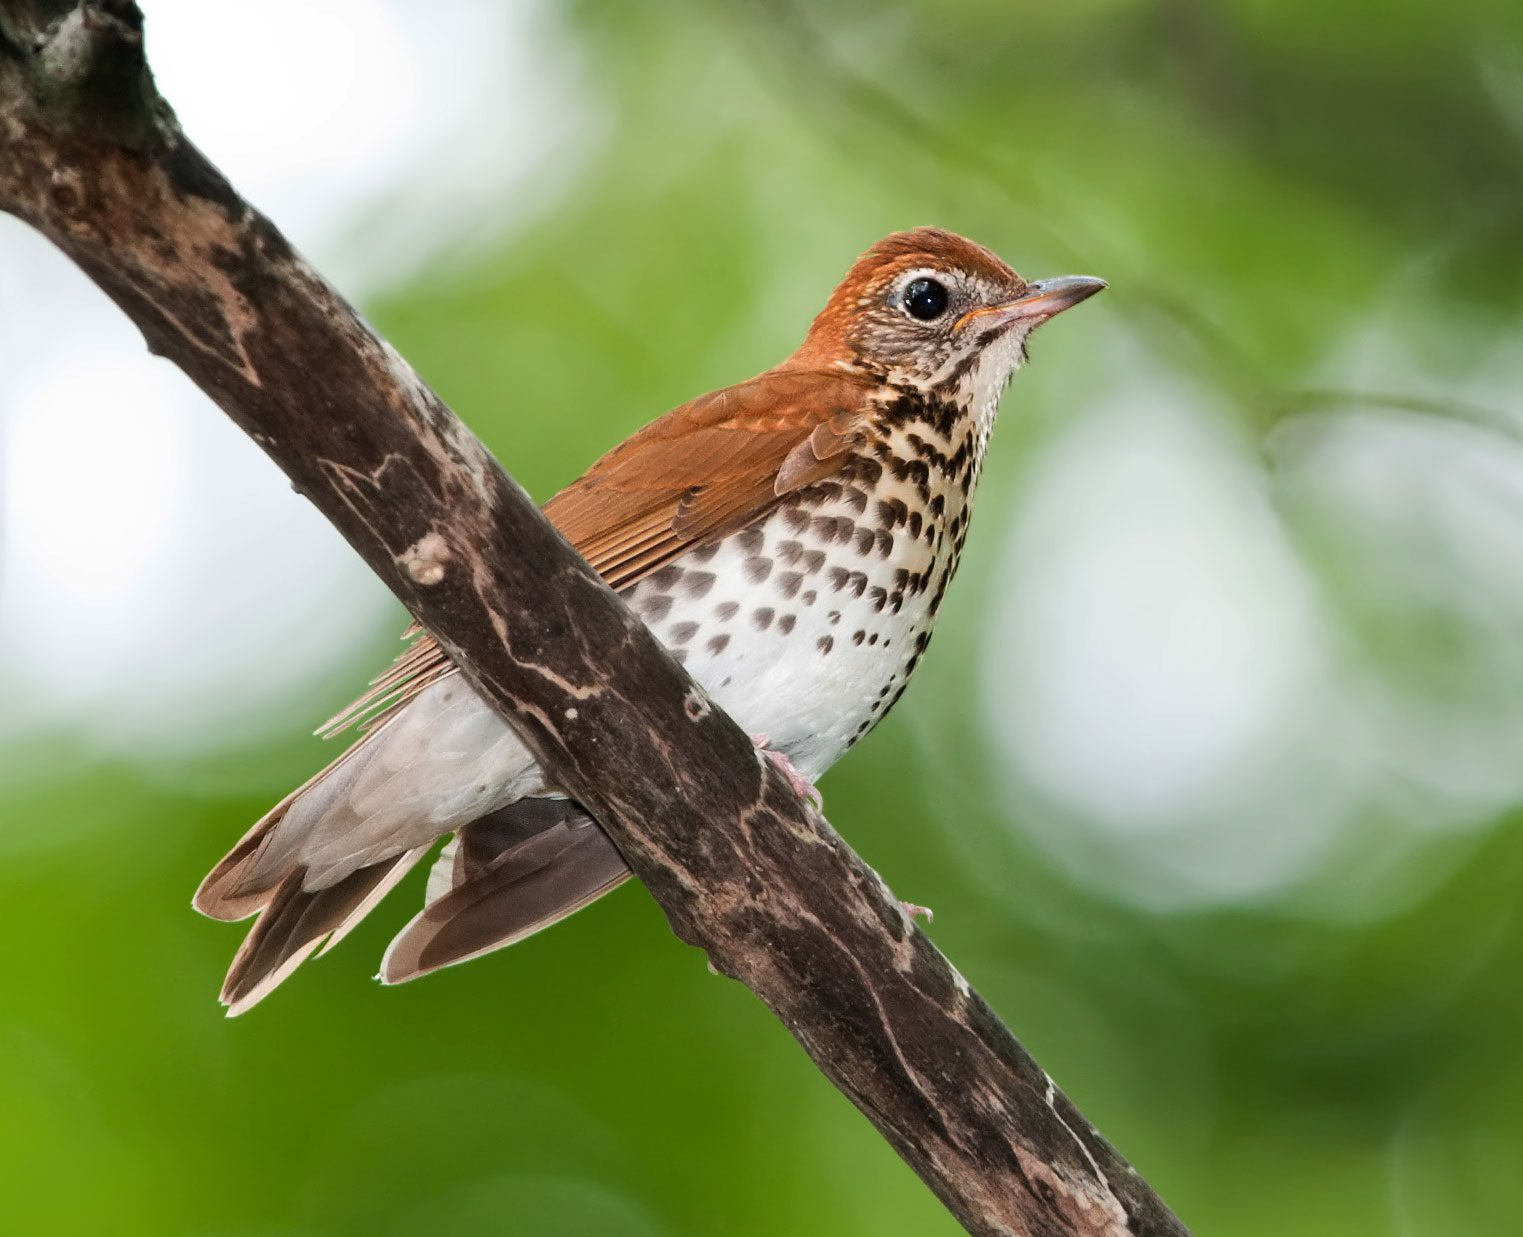 WOod Thrush often seento disappear during the summer. Photo by Kelly Colgan Azar via Birdshare.